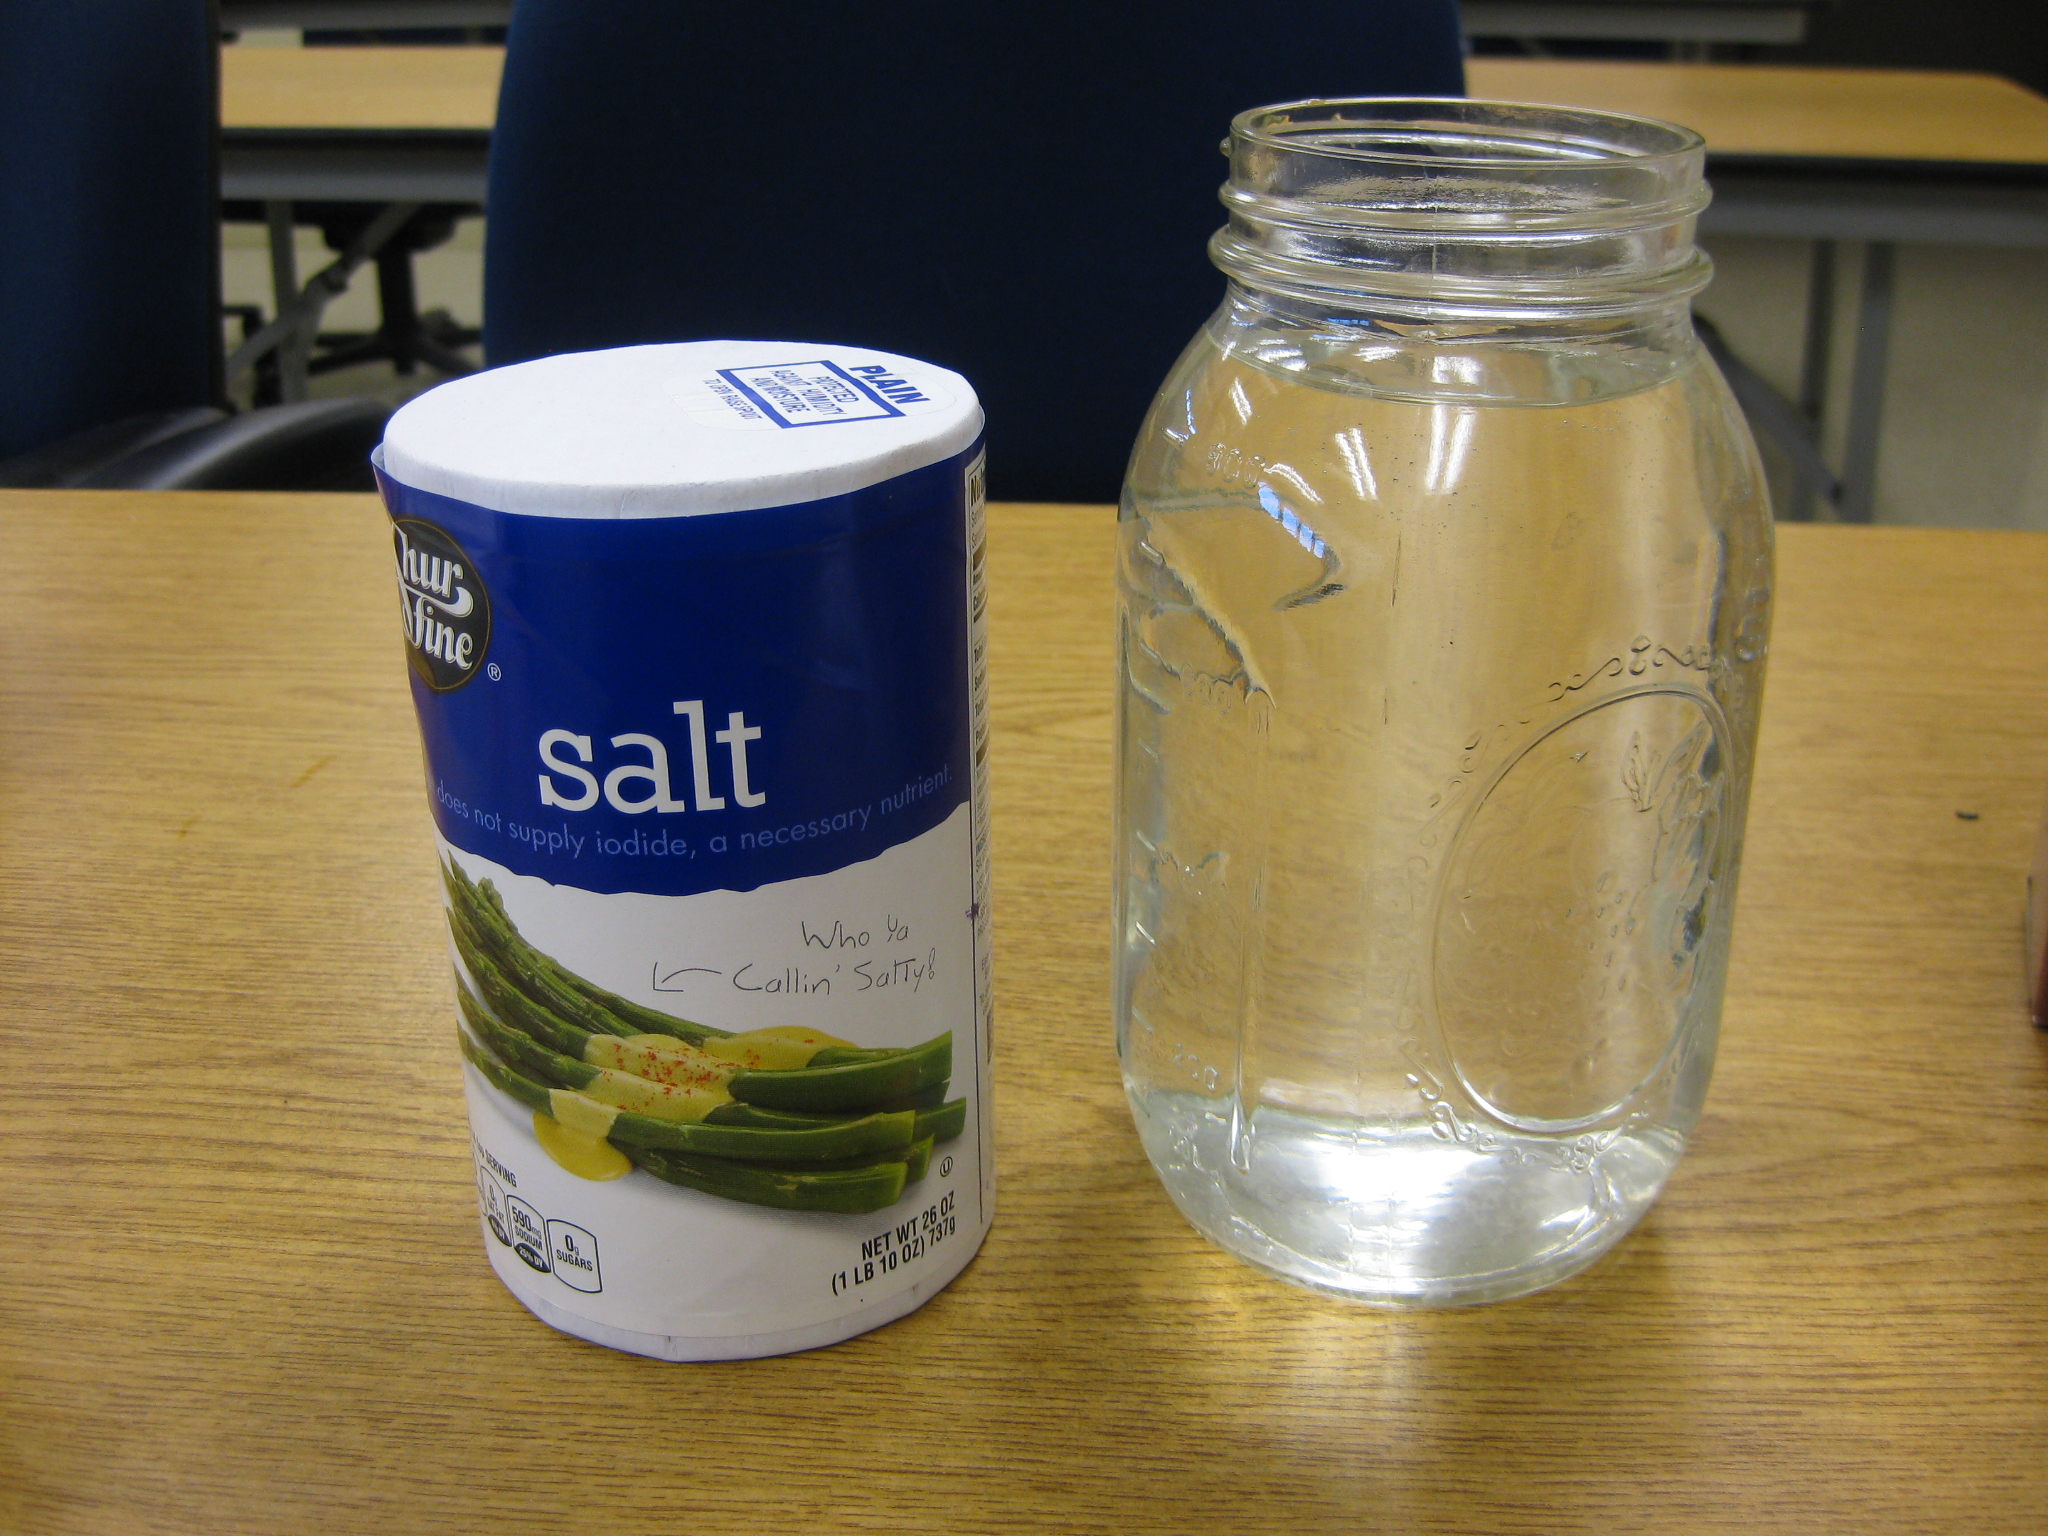 determining iodide content of salt Iodised salt (also spelled iodized  an opened package of table salt with iodide may rapidly lose its iodine content through the process of oxidation and iodine.